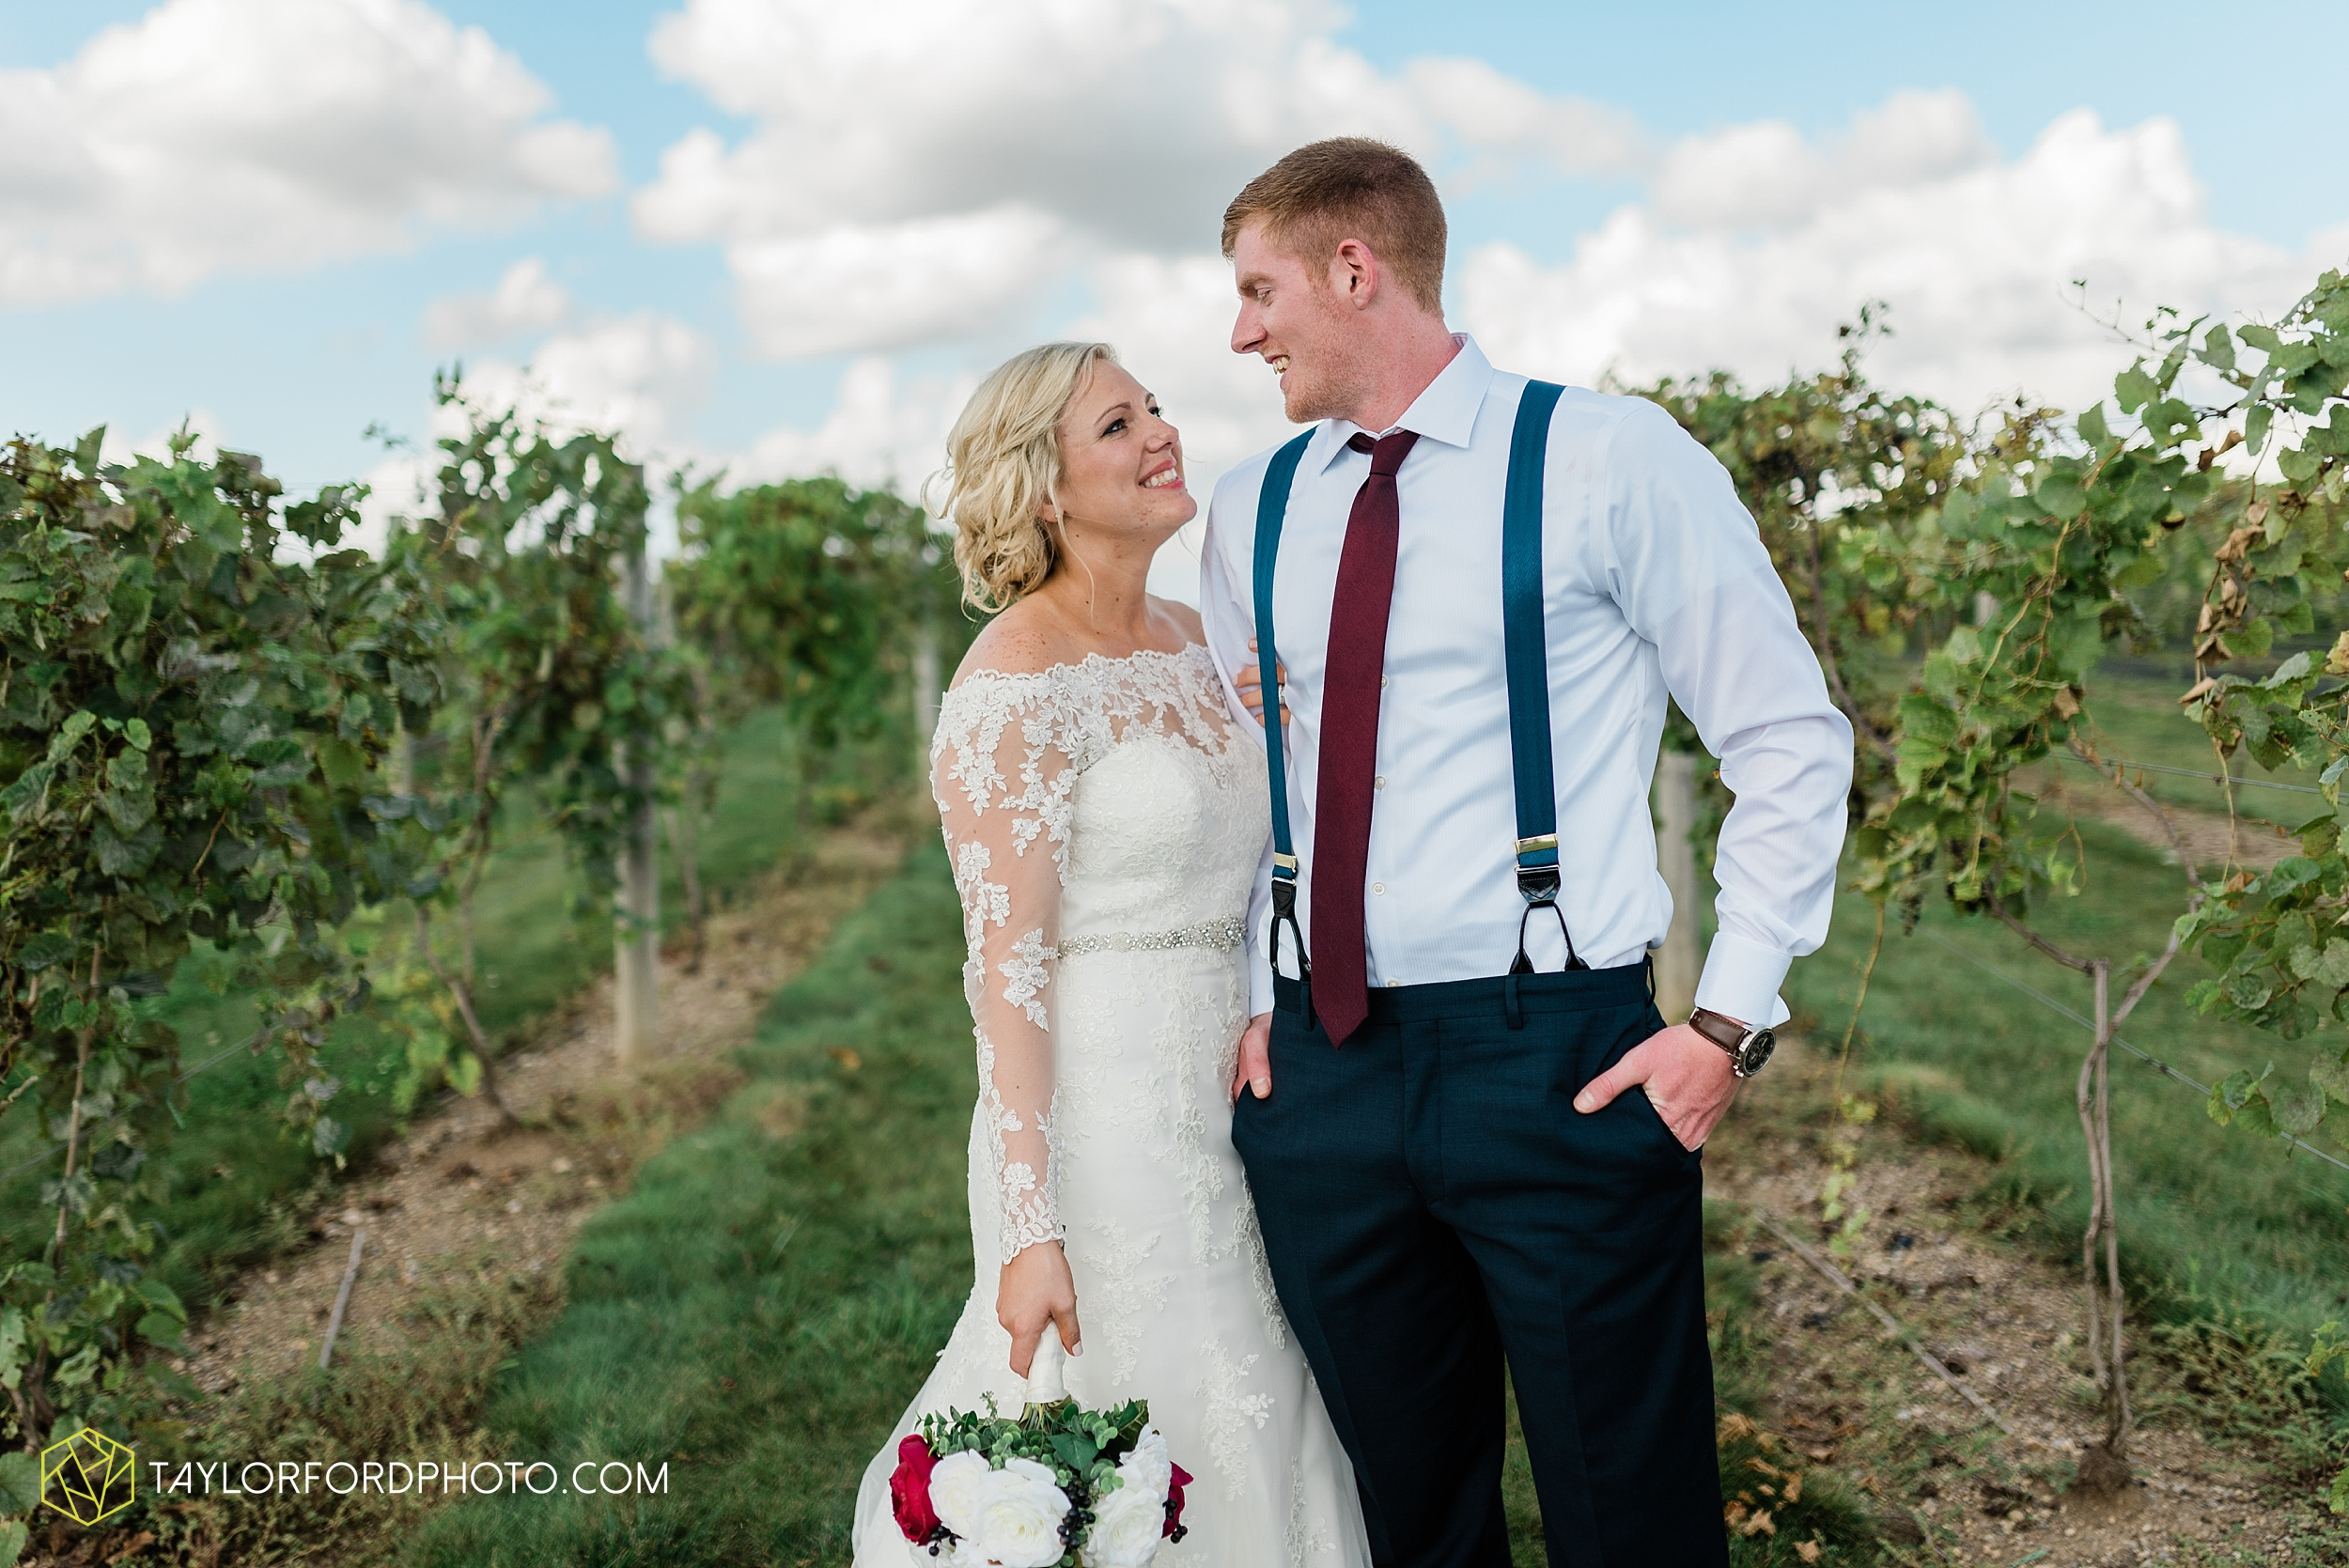 gayle-rayman-mike-steele-ottoville-ohio-wedding-immaculate-conception-parish-center-wedding-sycamore-lake-winery-wannamachers-photographer-taylor-ford-photography_0414.jpg